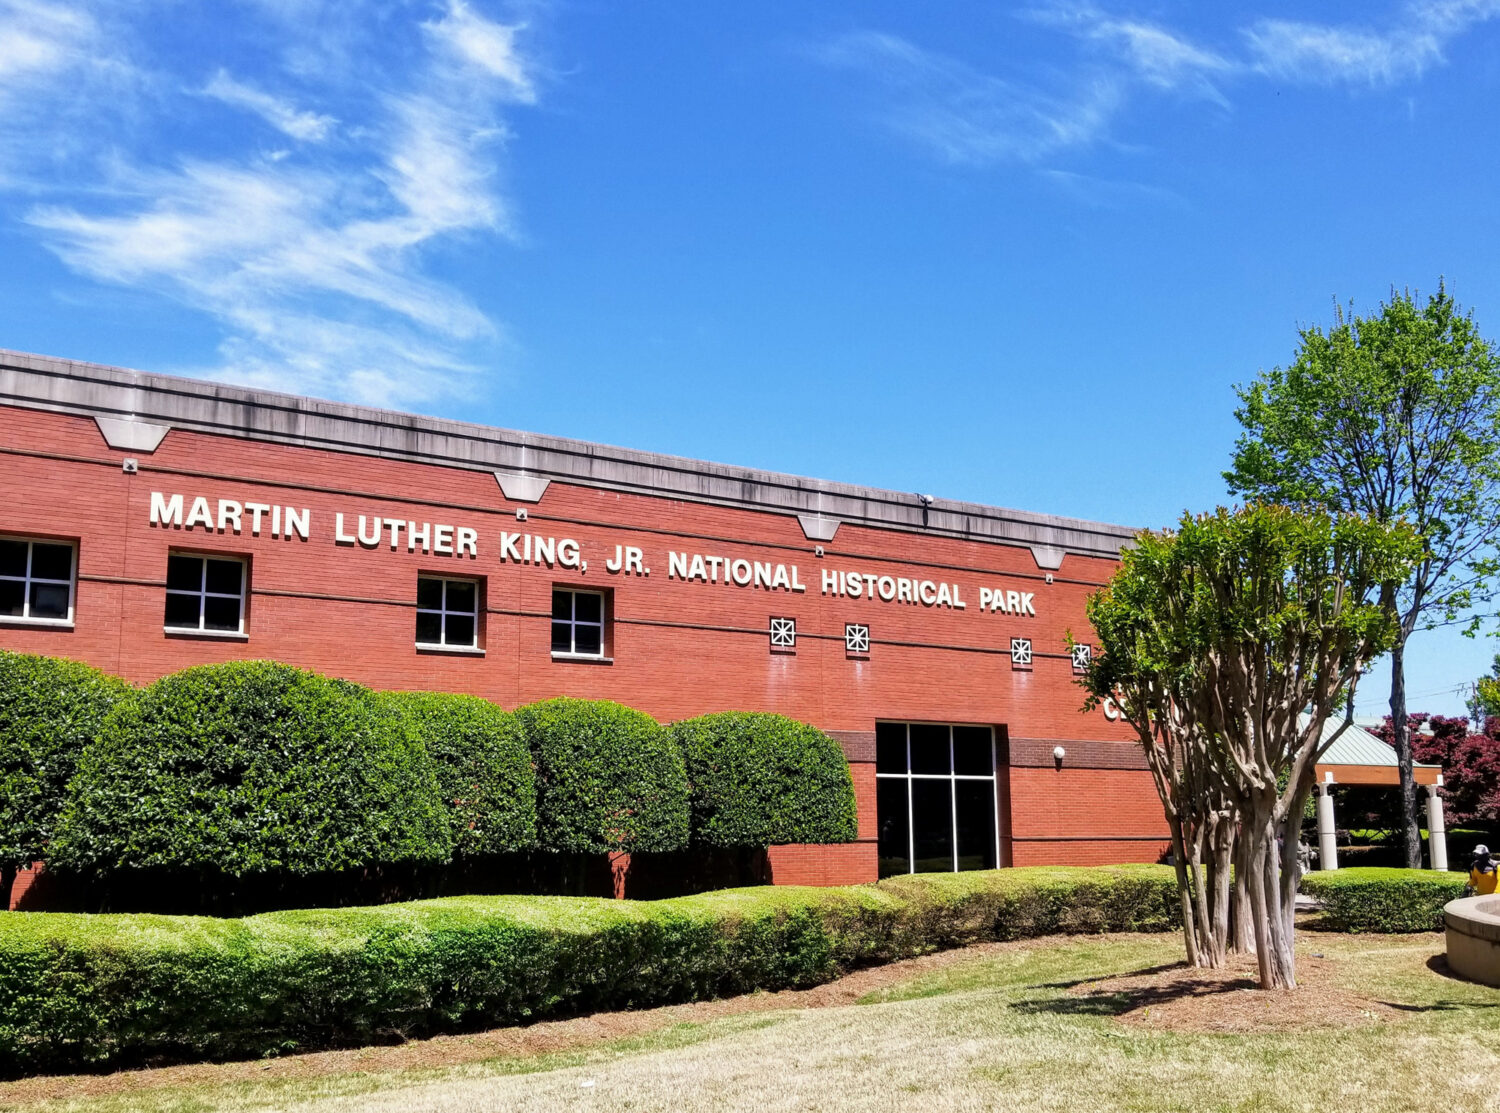 The Dr. Martin Luther King Jr. National Historic Park is one of the best things to do in Atlanta with kids